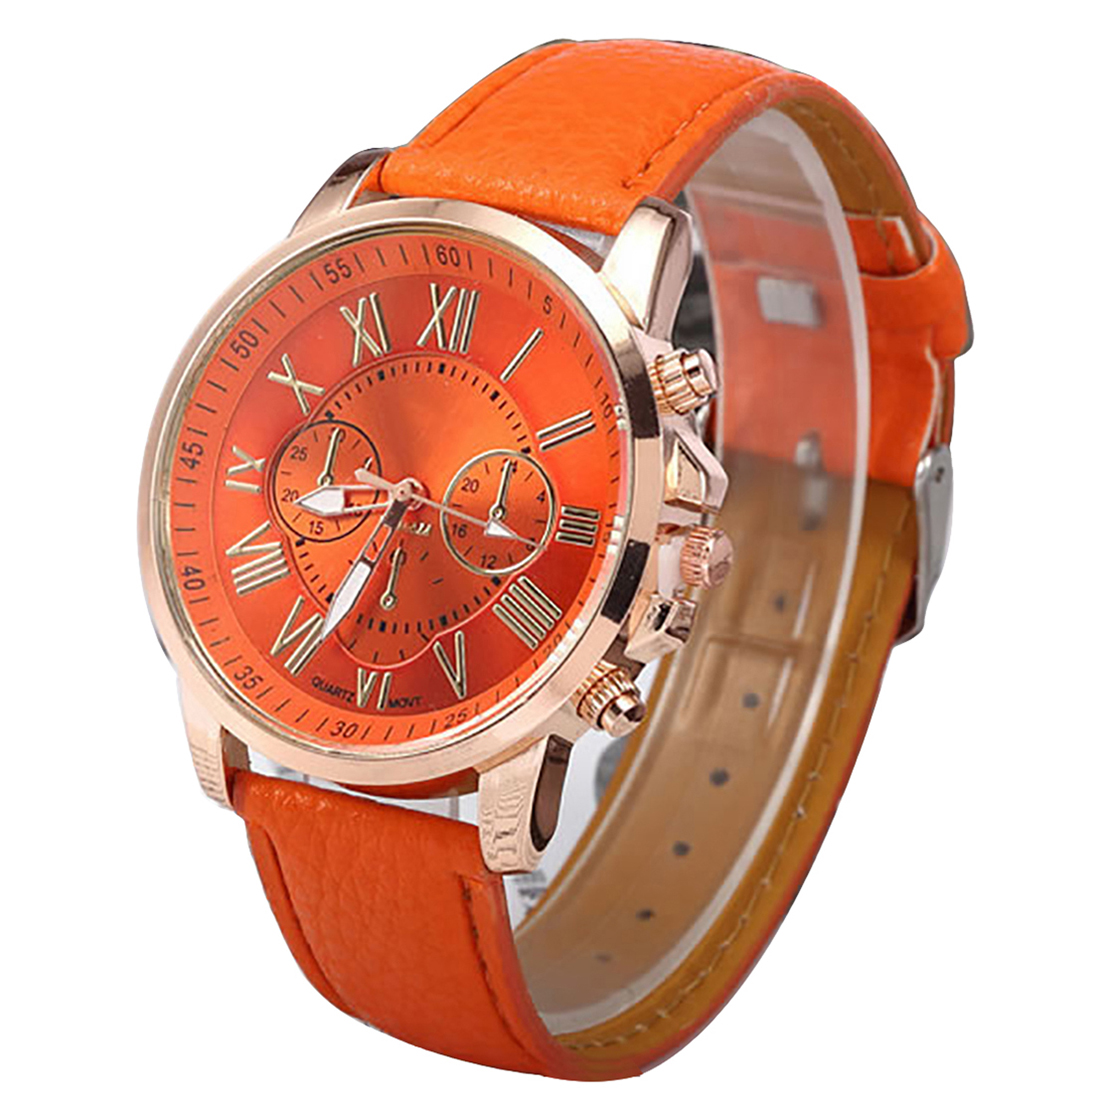 Relogio feminino orange women quartz watch leather sport wristwatch business watches new fashion relogio feminino top luxury hot rigardu fashion female wrist watch lovers gift leather band alloy case wristwatch women lady quartz watch relogio feminino 25